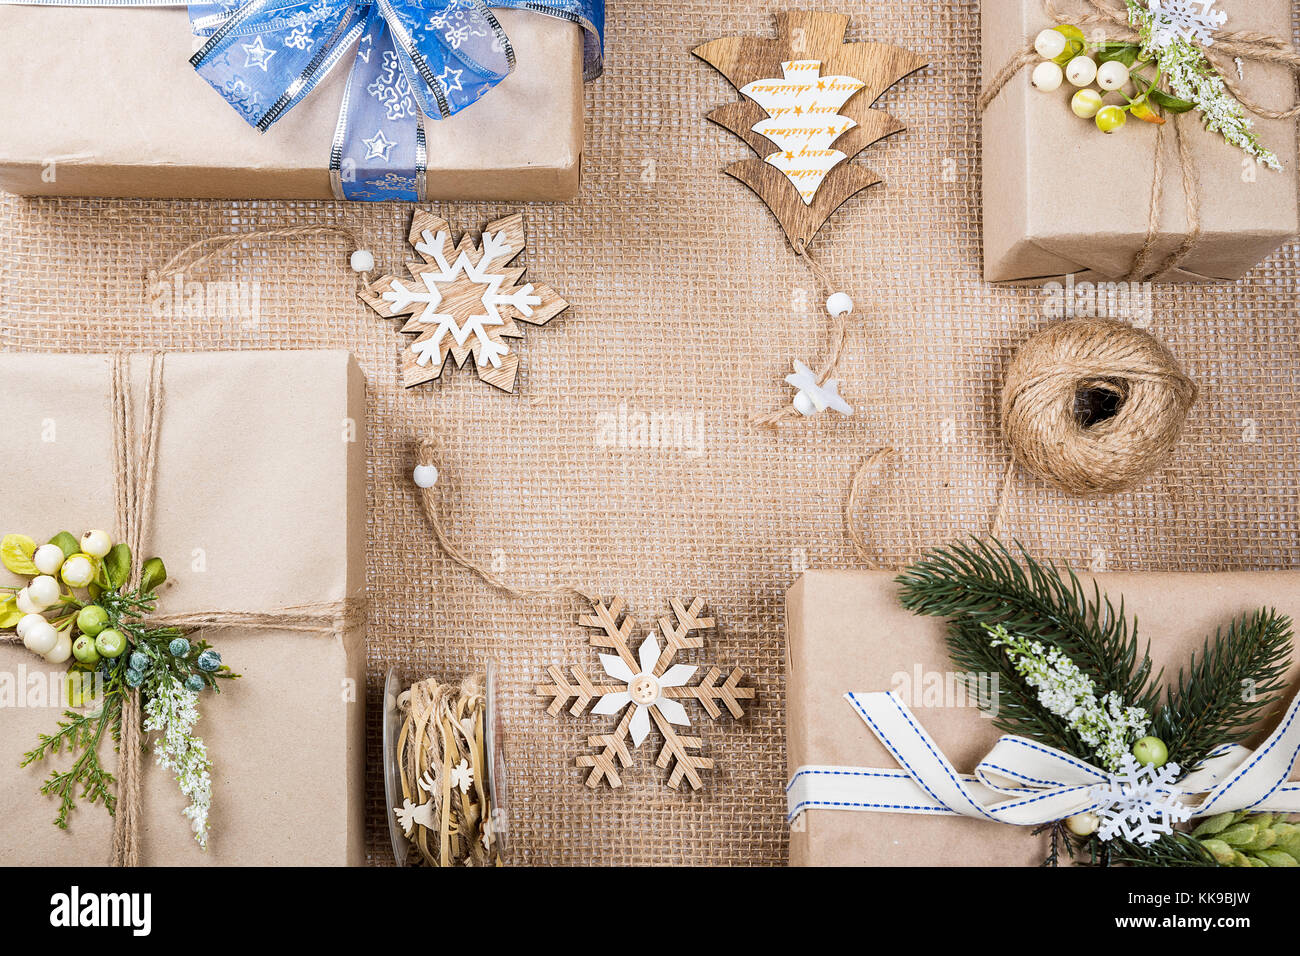 classy christmas gifts box presents in brown paper with toys and new year decor on burlap merry christmas card background